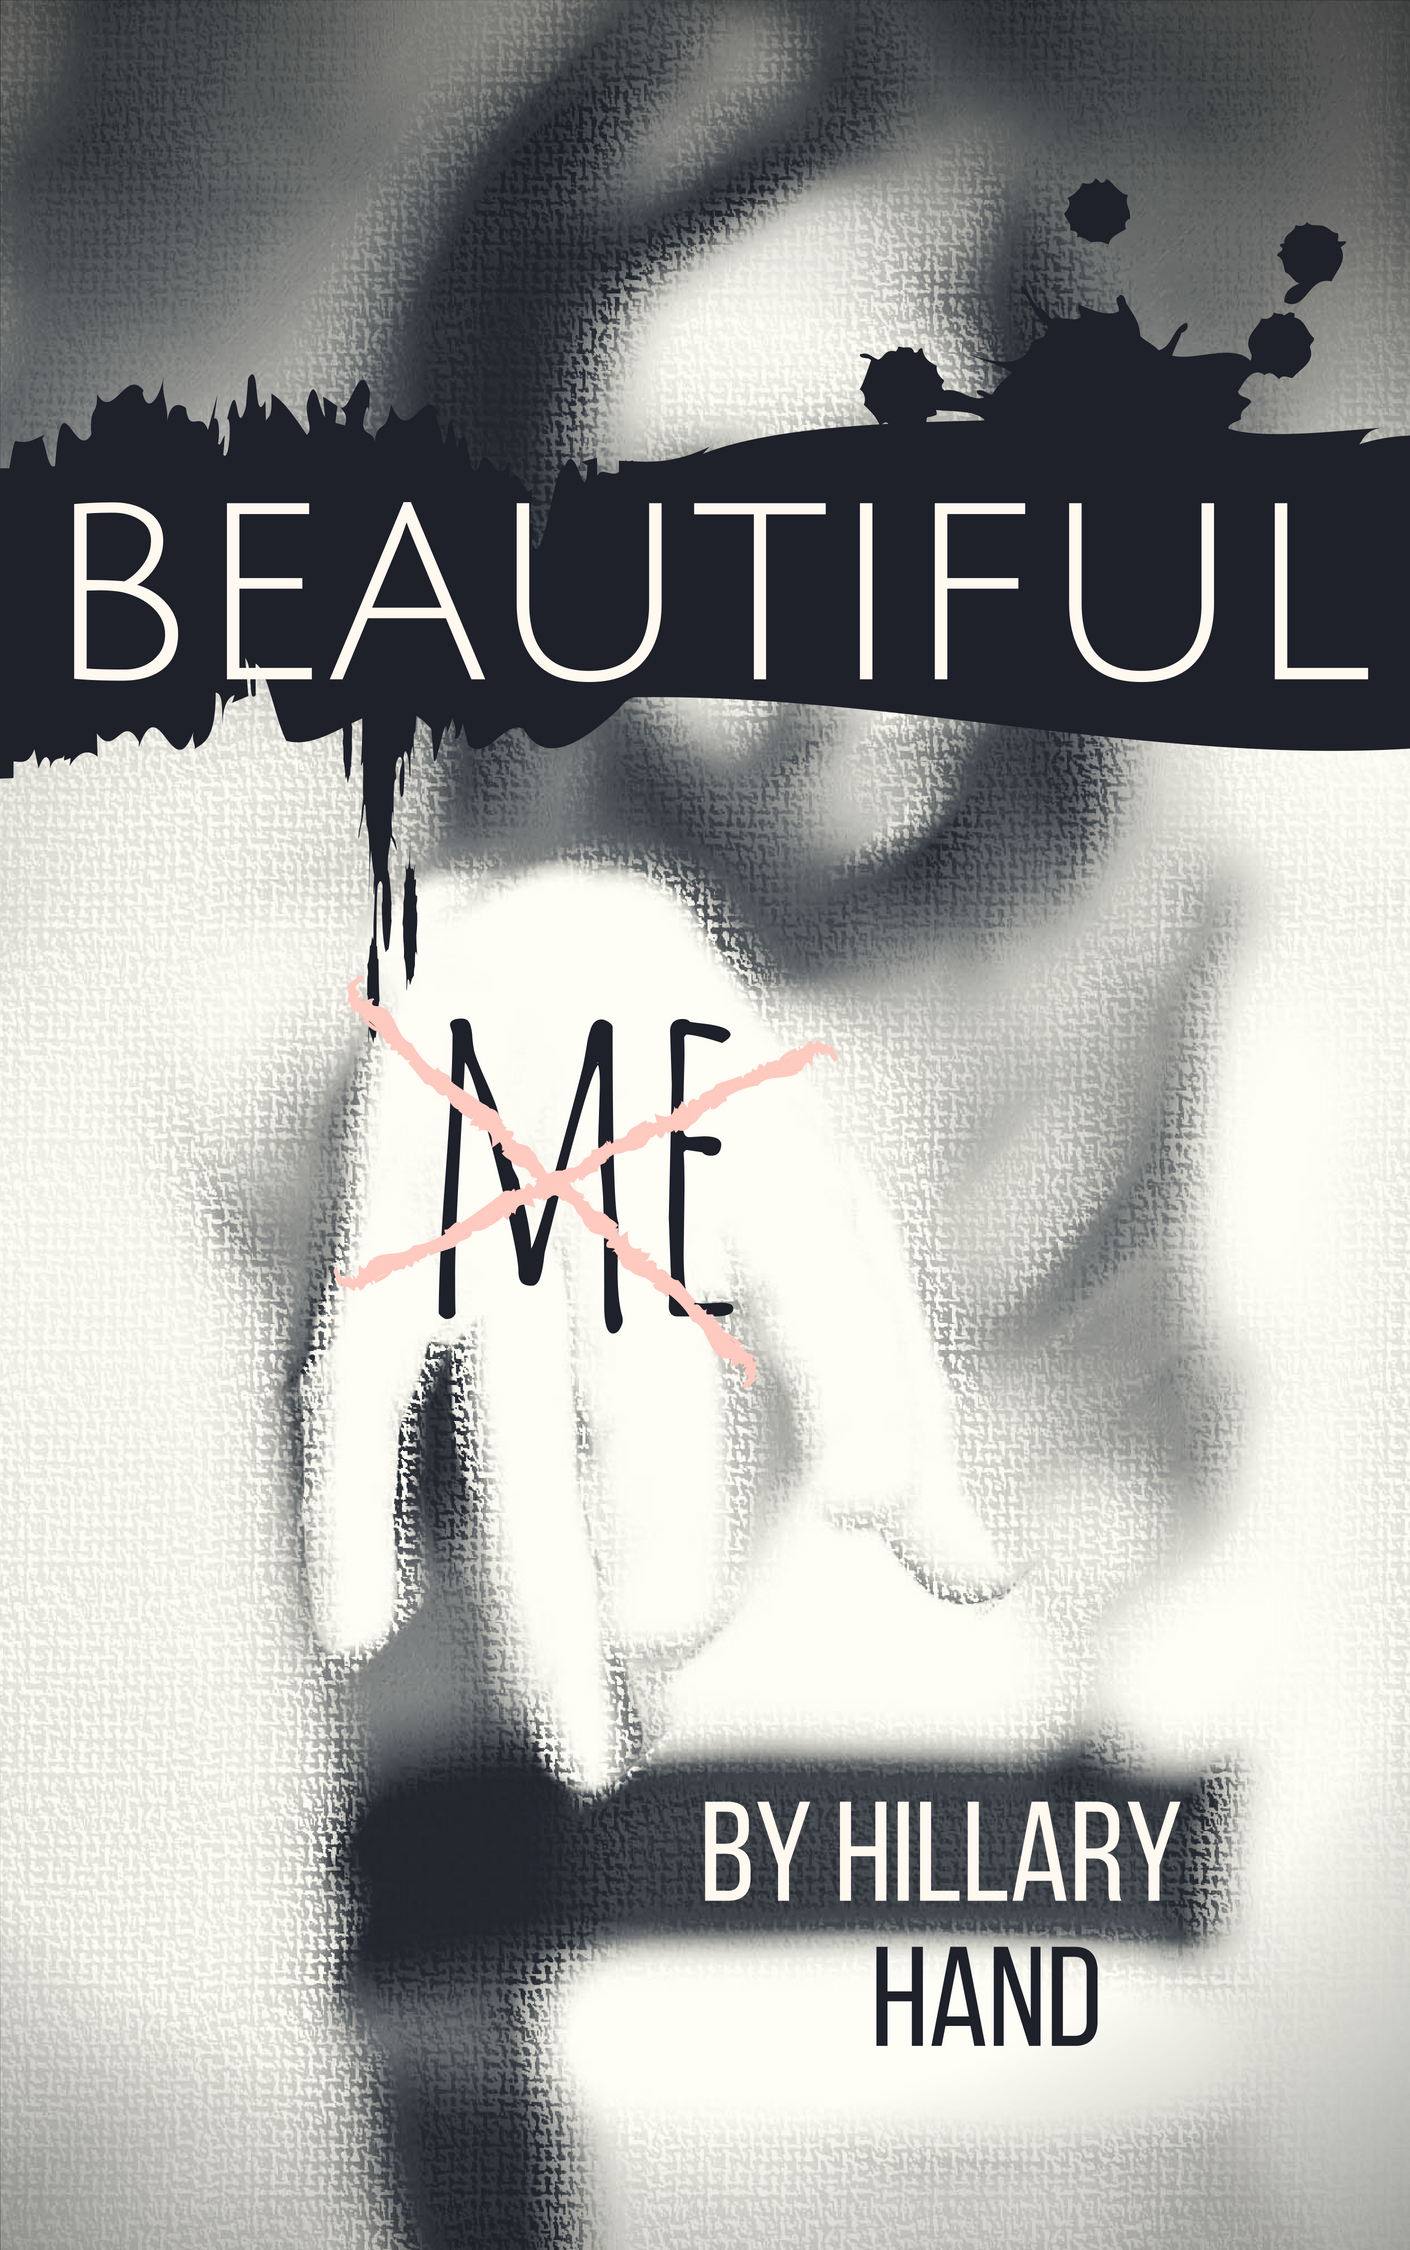 Beautiful me - ebook to help you discover your self-worth and overcome insecurity